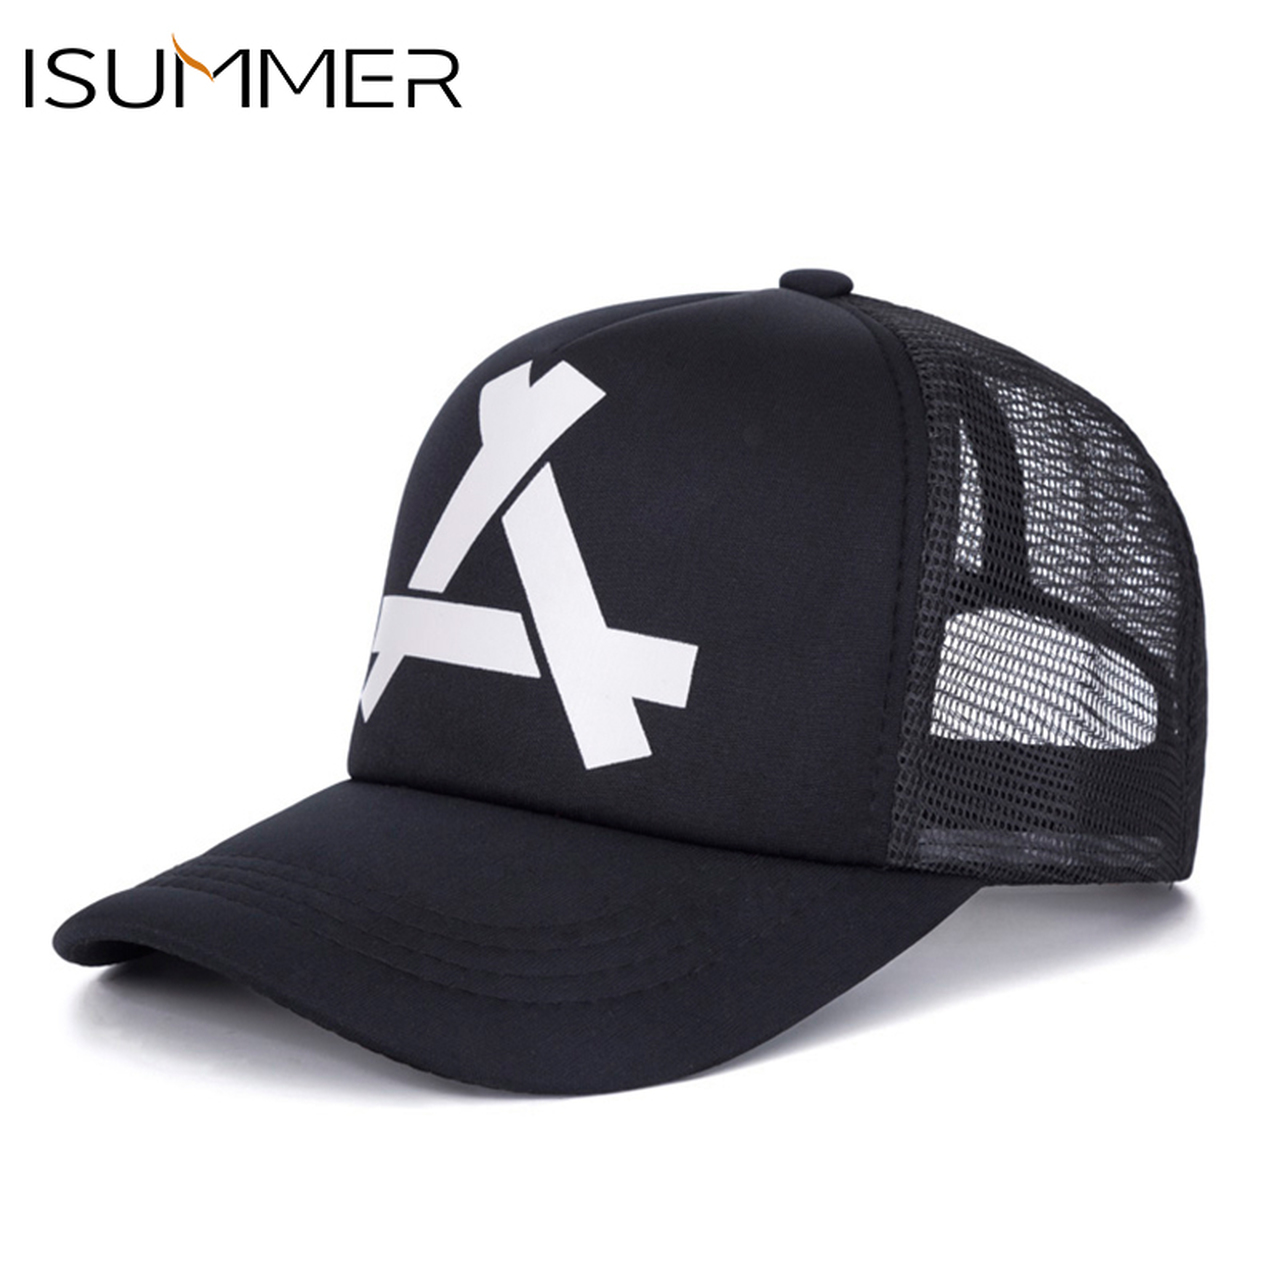 ISUMMER 2018 Summer Baseball Mesh Cap Men Hat Hip Hop Snapback Hat Dad Hat  Adjustable Leisure ... 6a02858f23bc